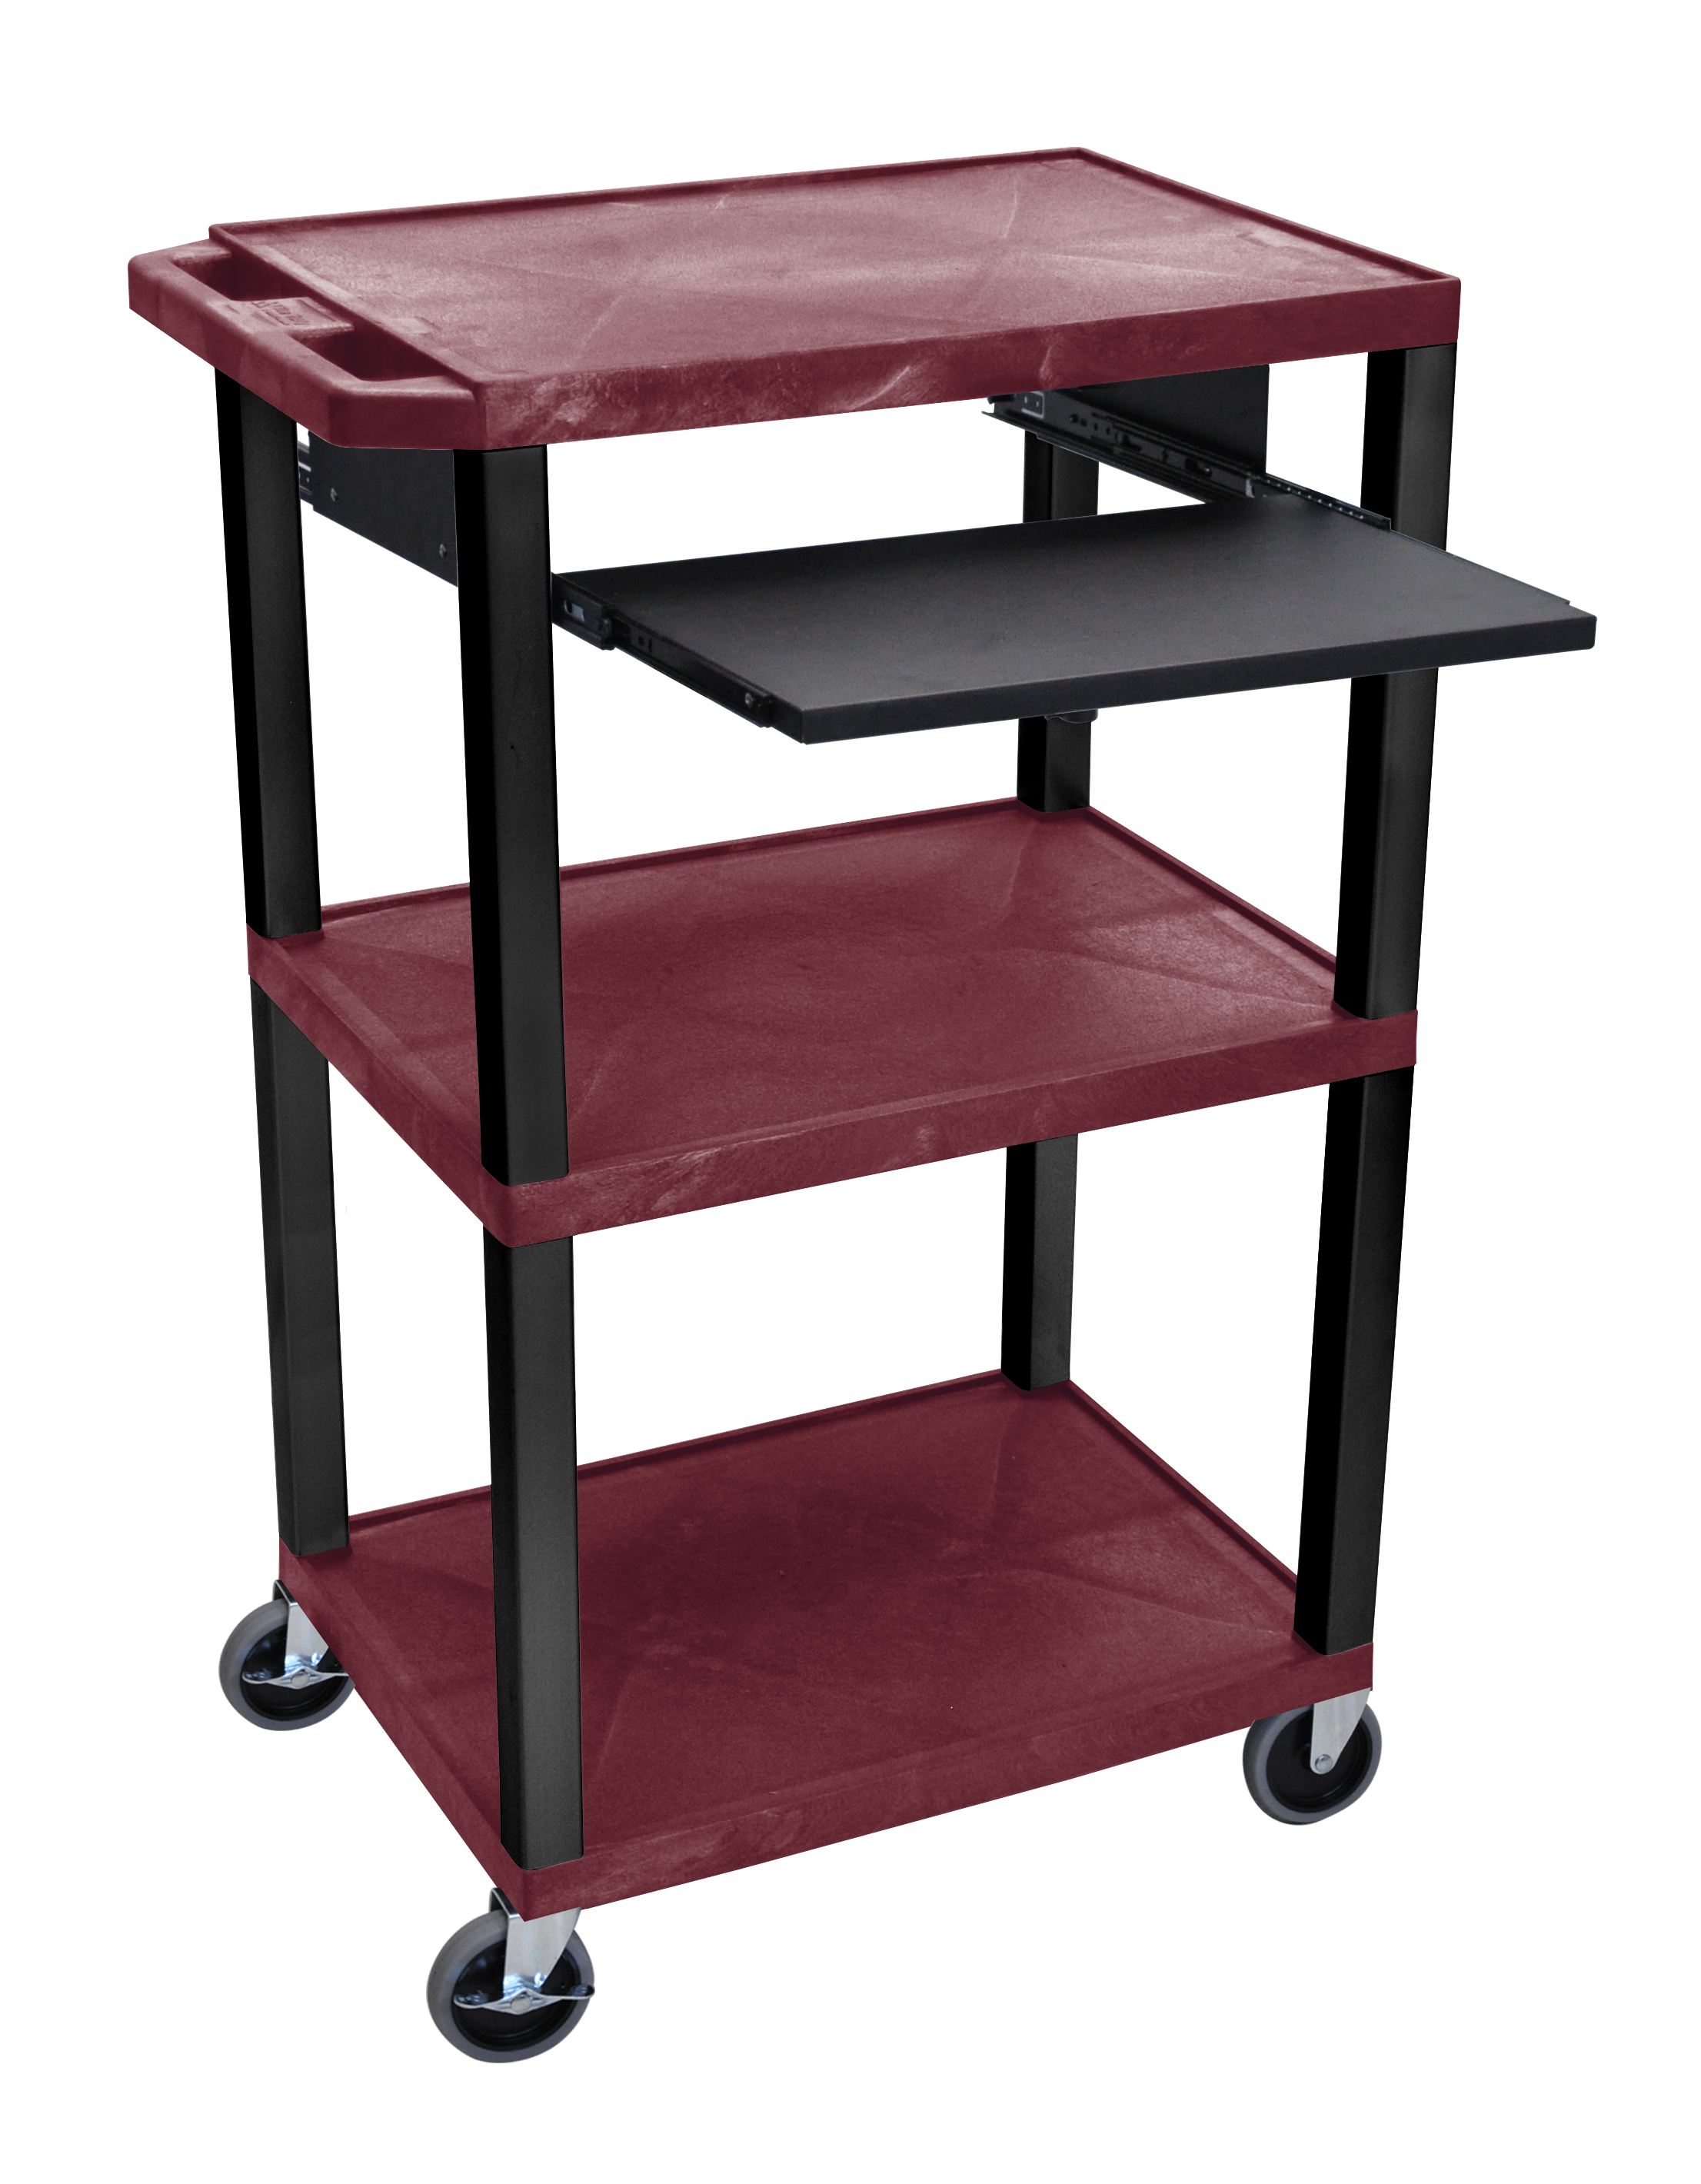 Offex Presentation Cart with Open Shelves and Pull Out Tray Burgundy and Black